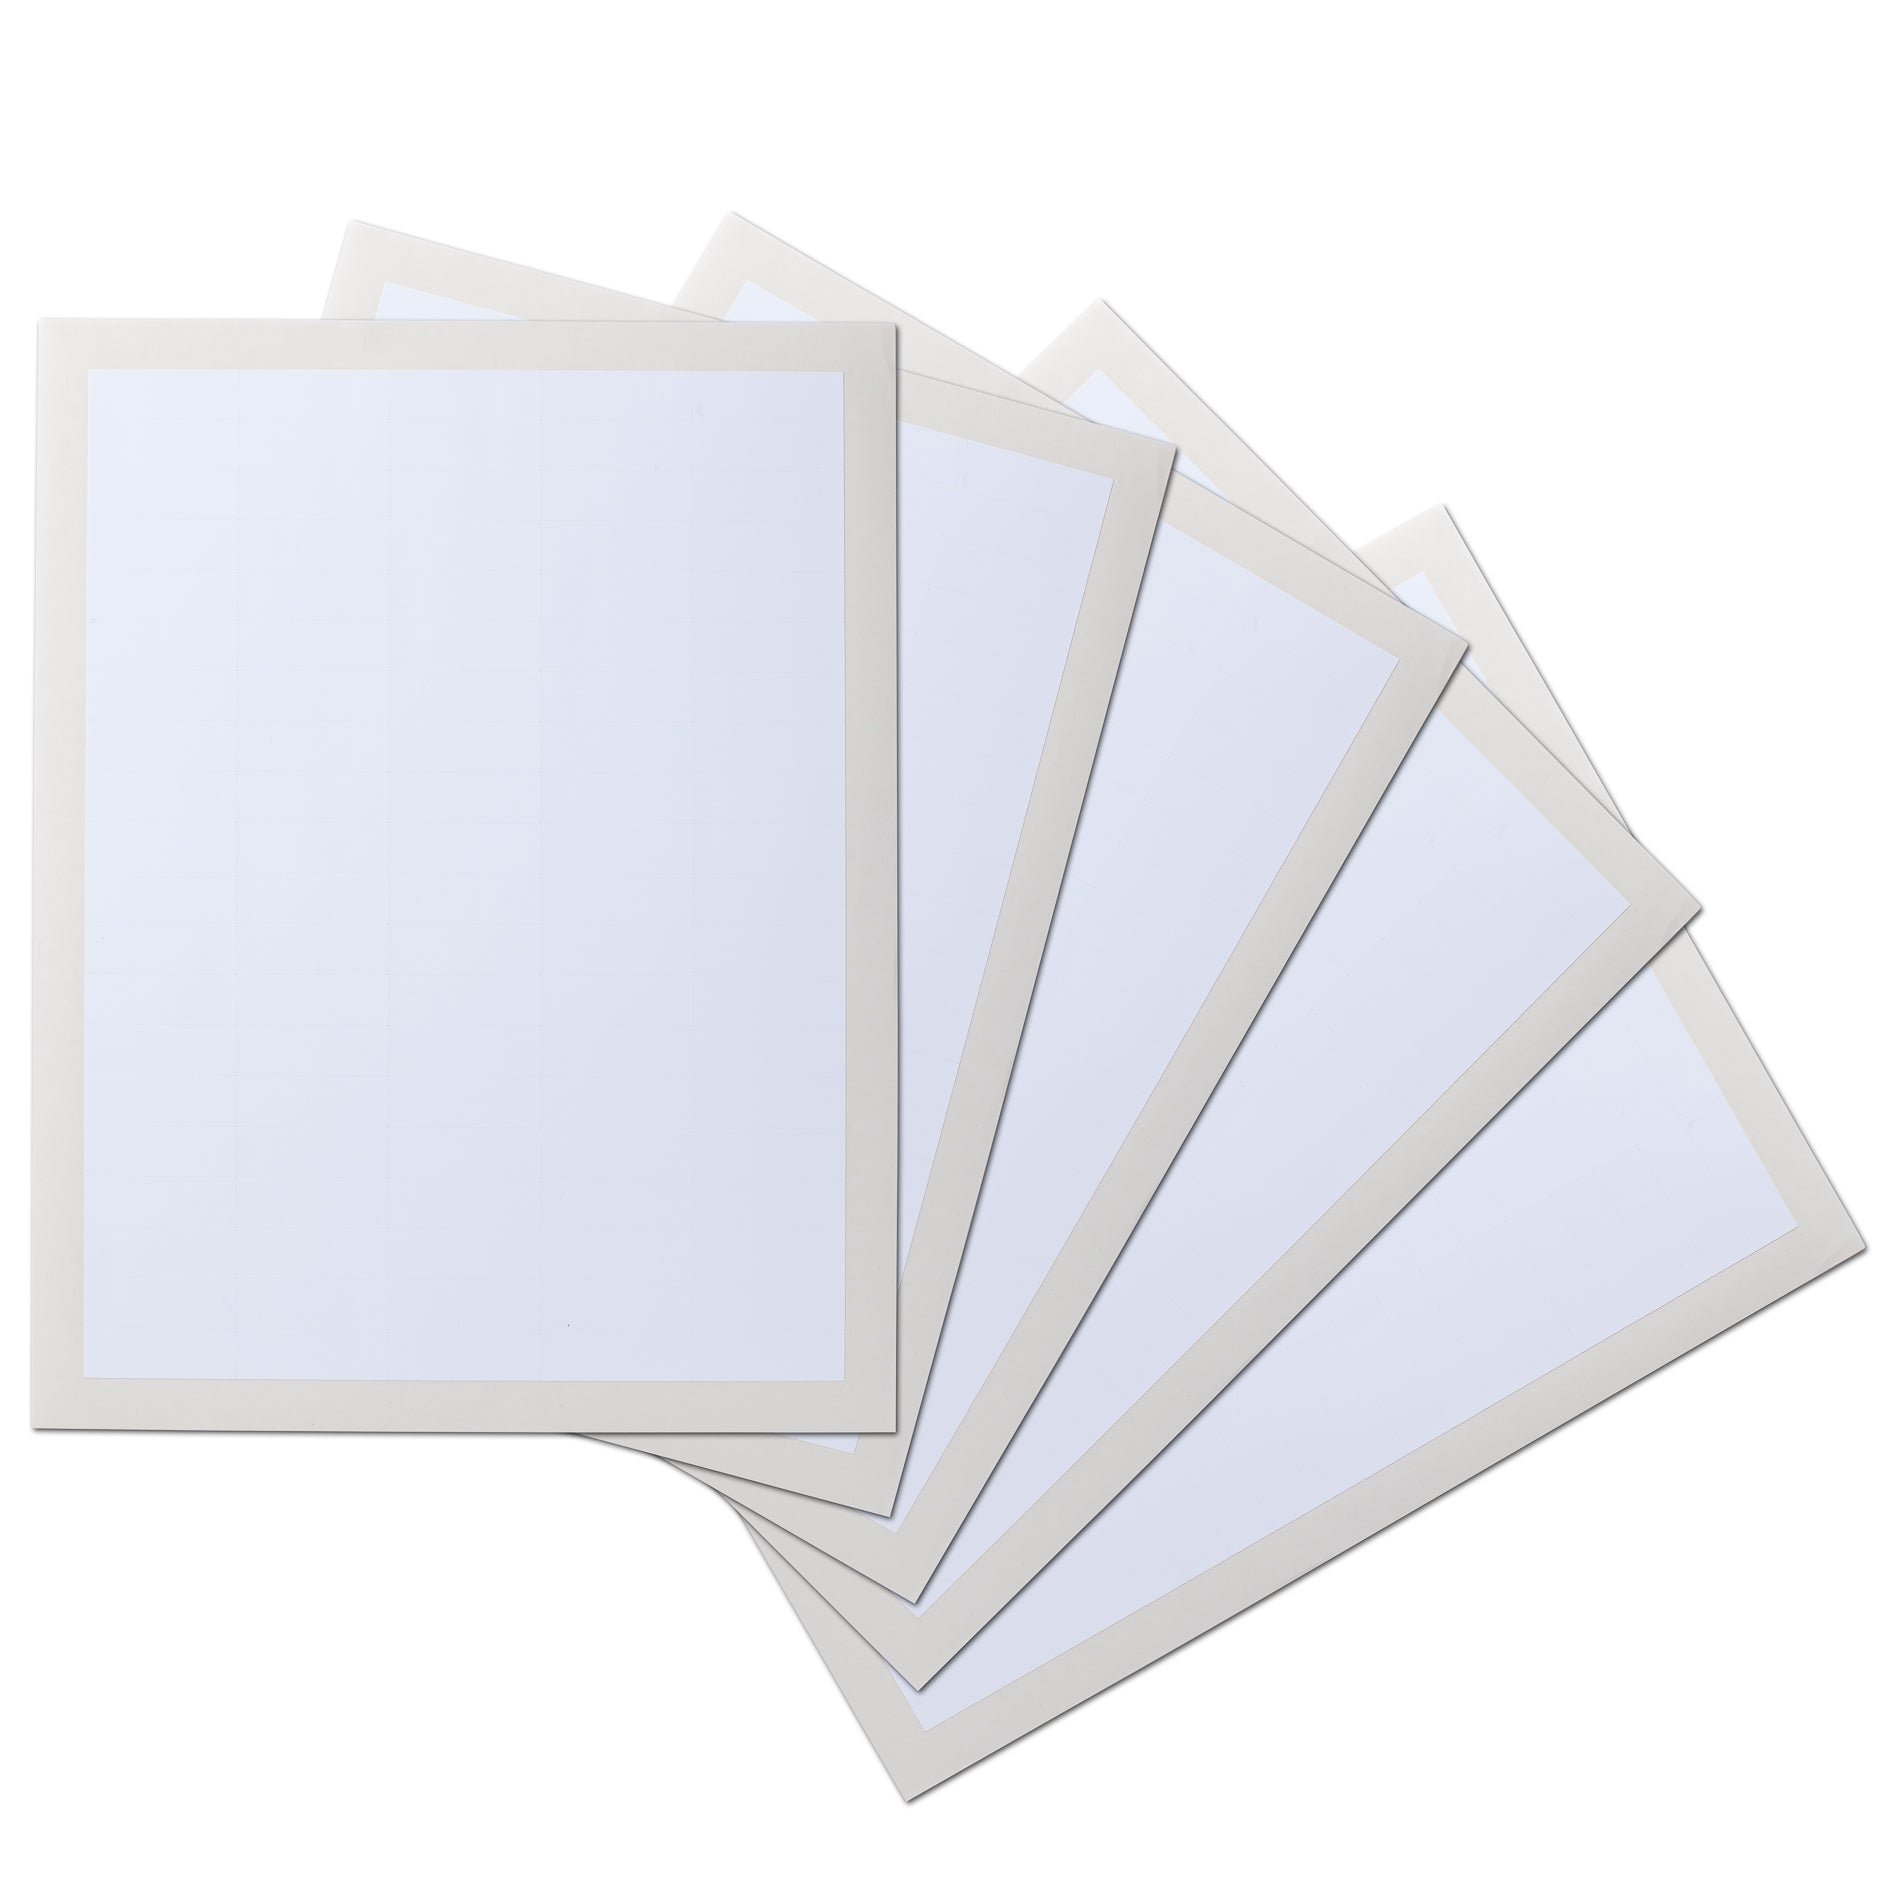 1.5 x 0.5 inch Rectangle Waterproof Labels